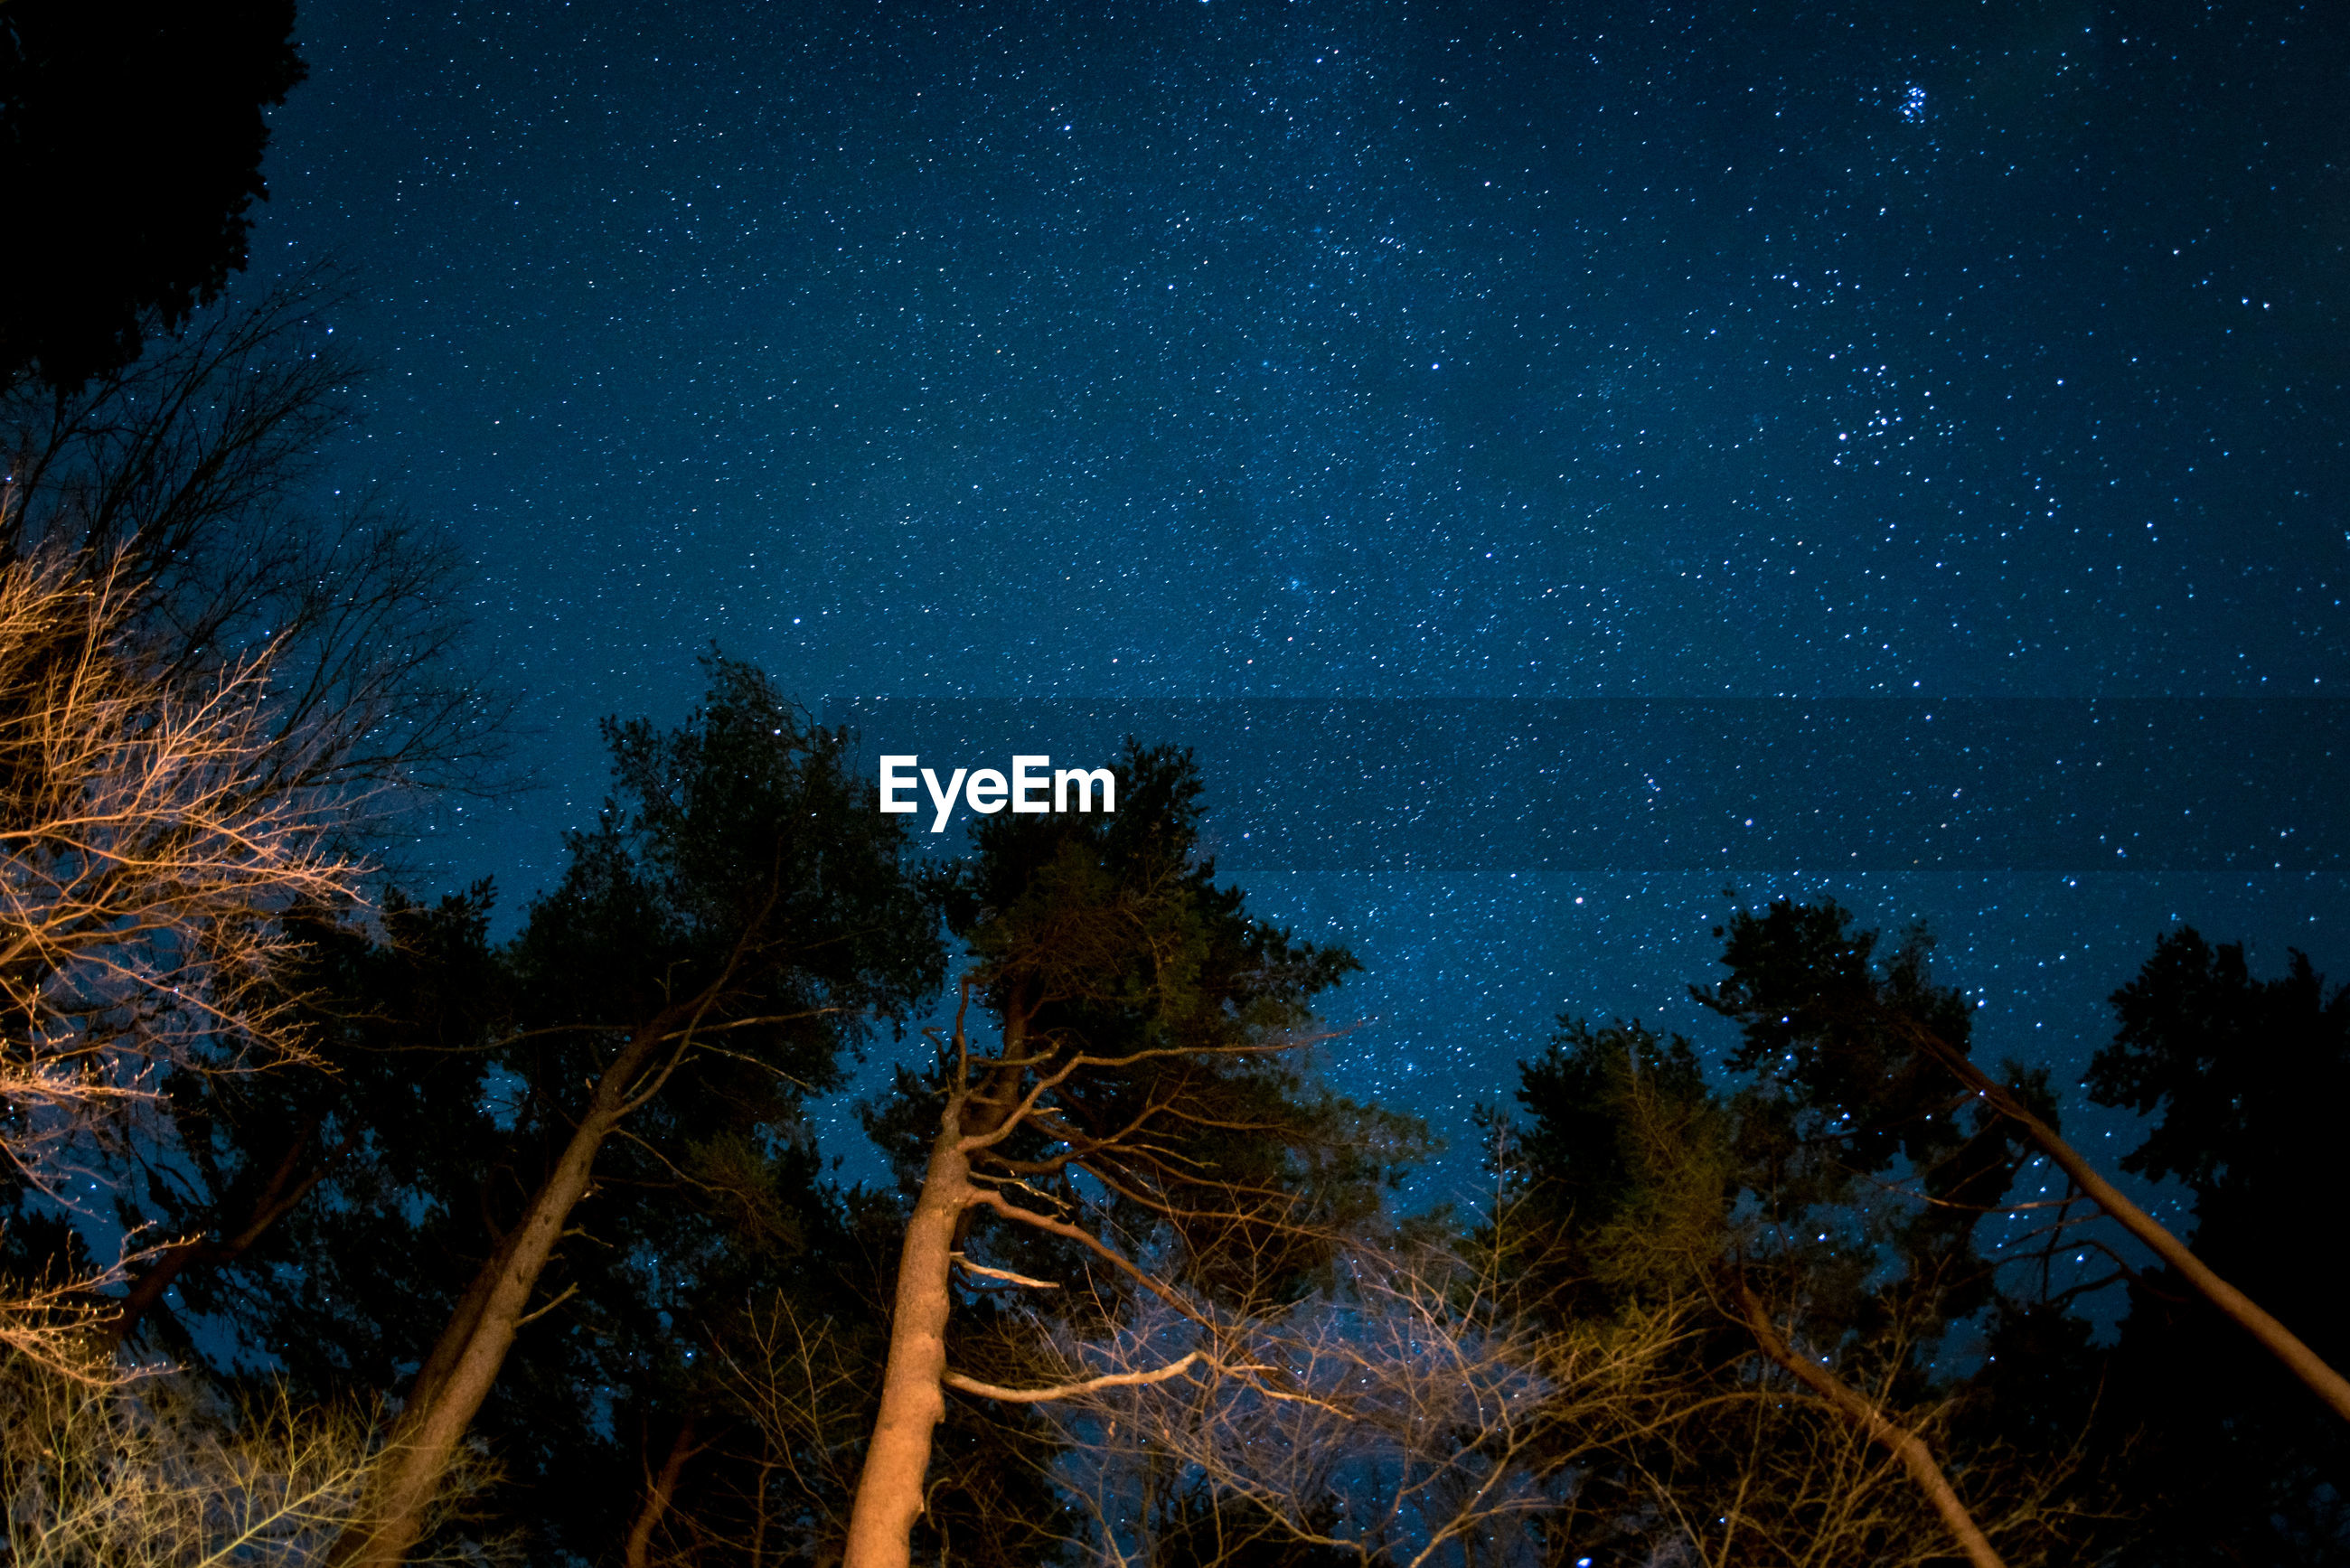 Low angle view of trees against constellation at night